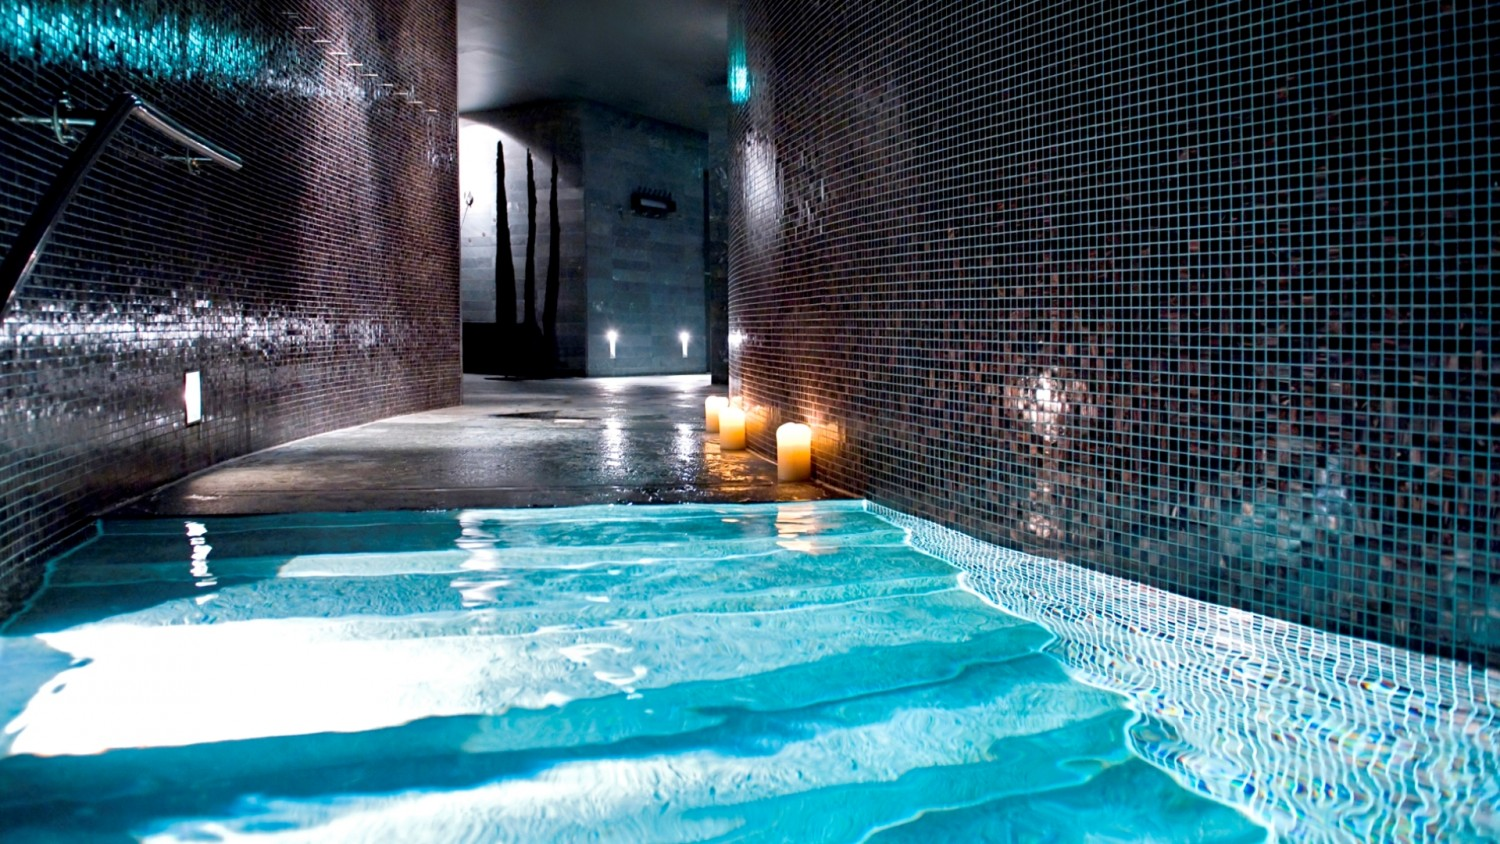 Jacuzzi Pool Preise Sofitel Munich Bayerpost 5 Star Hotel Official Site